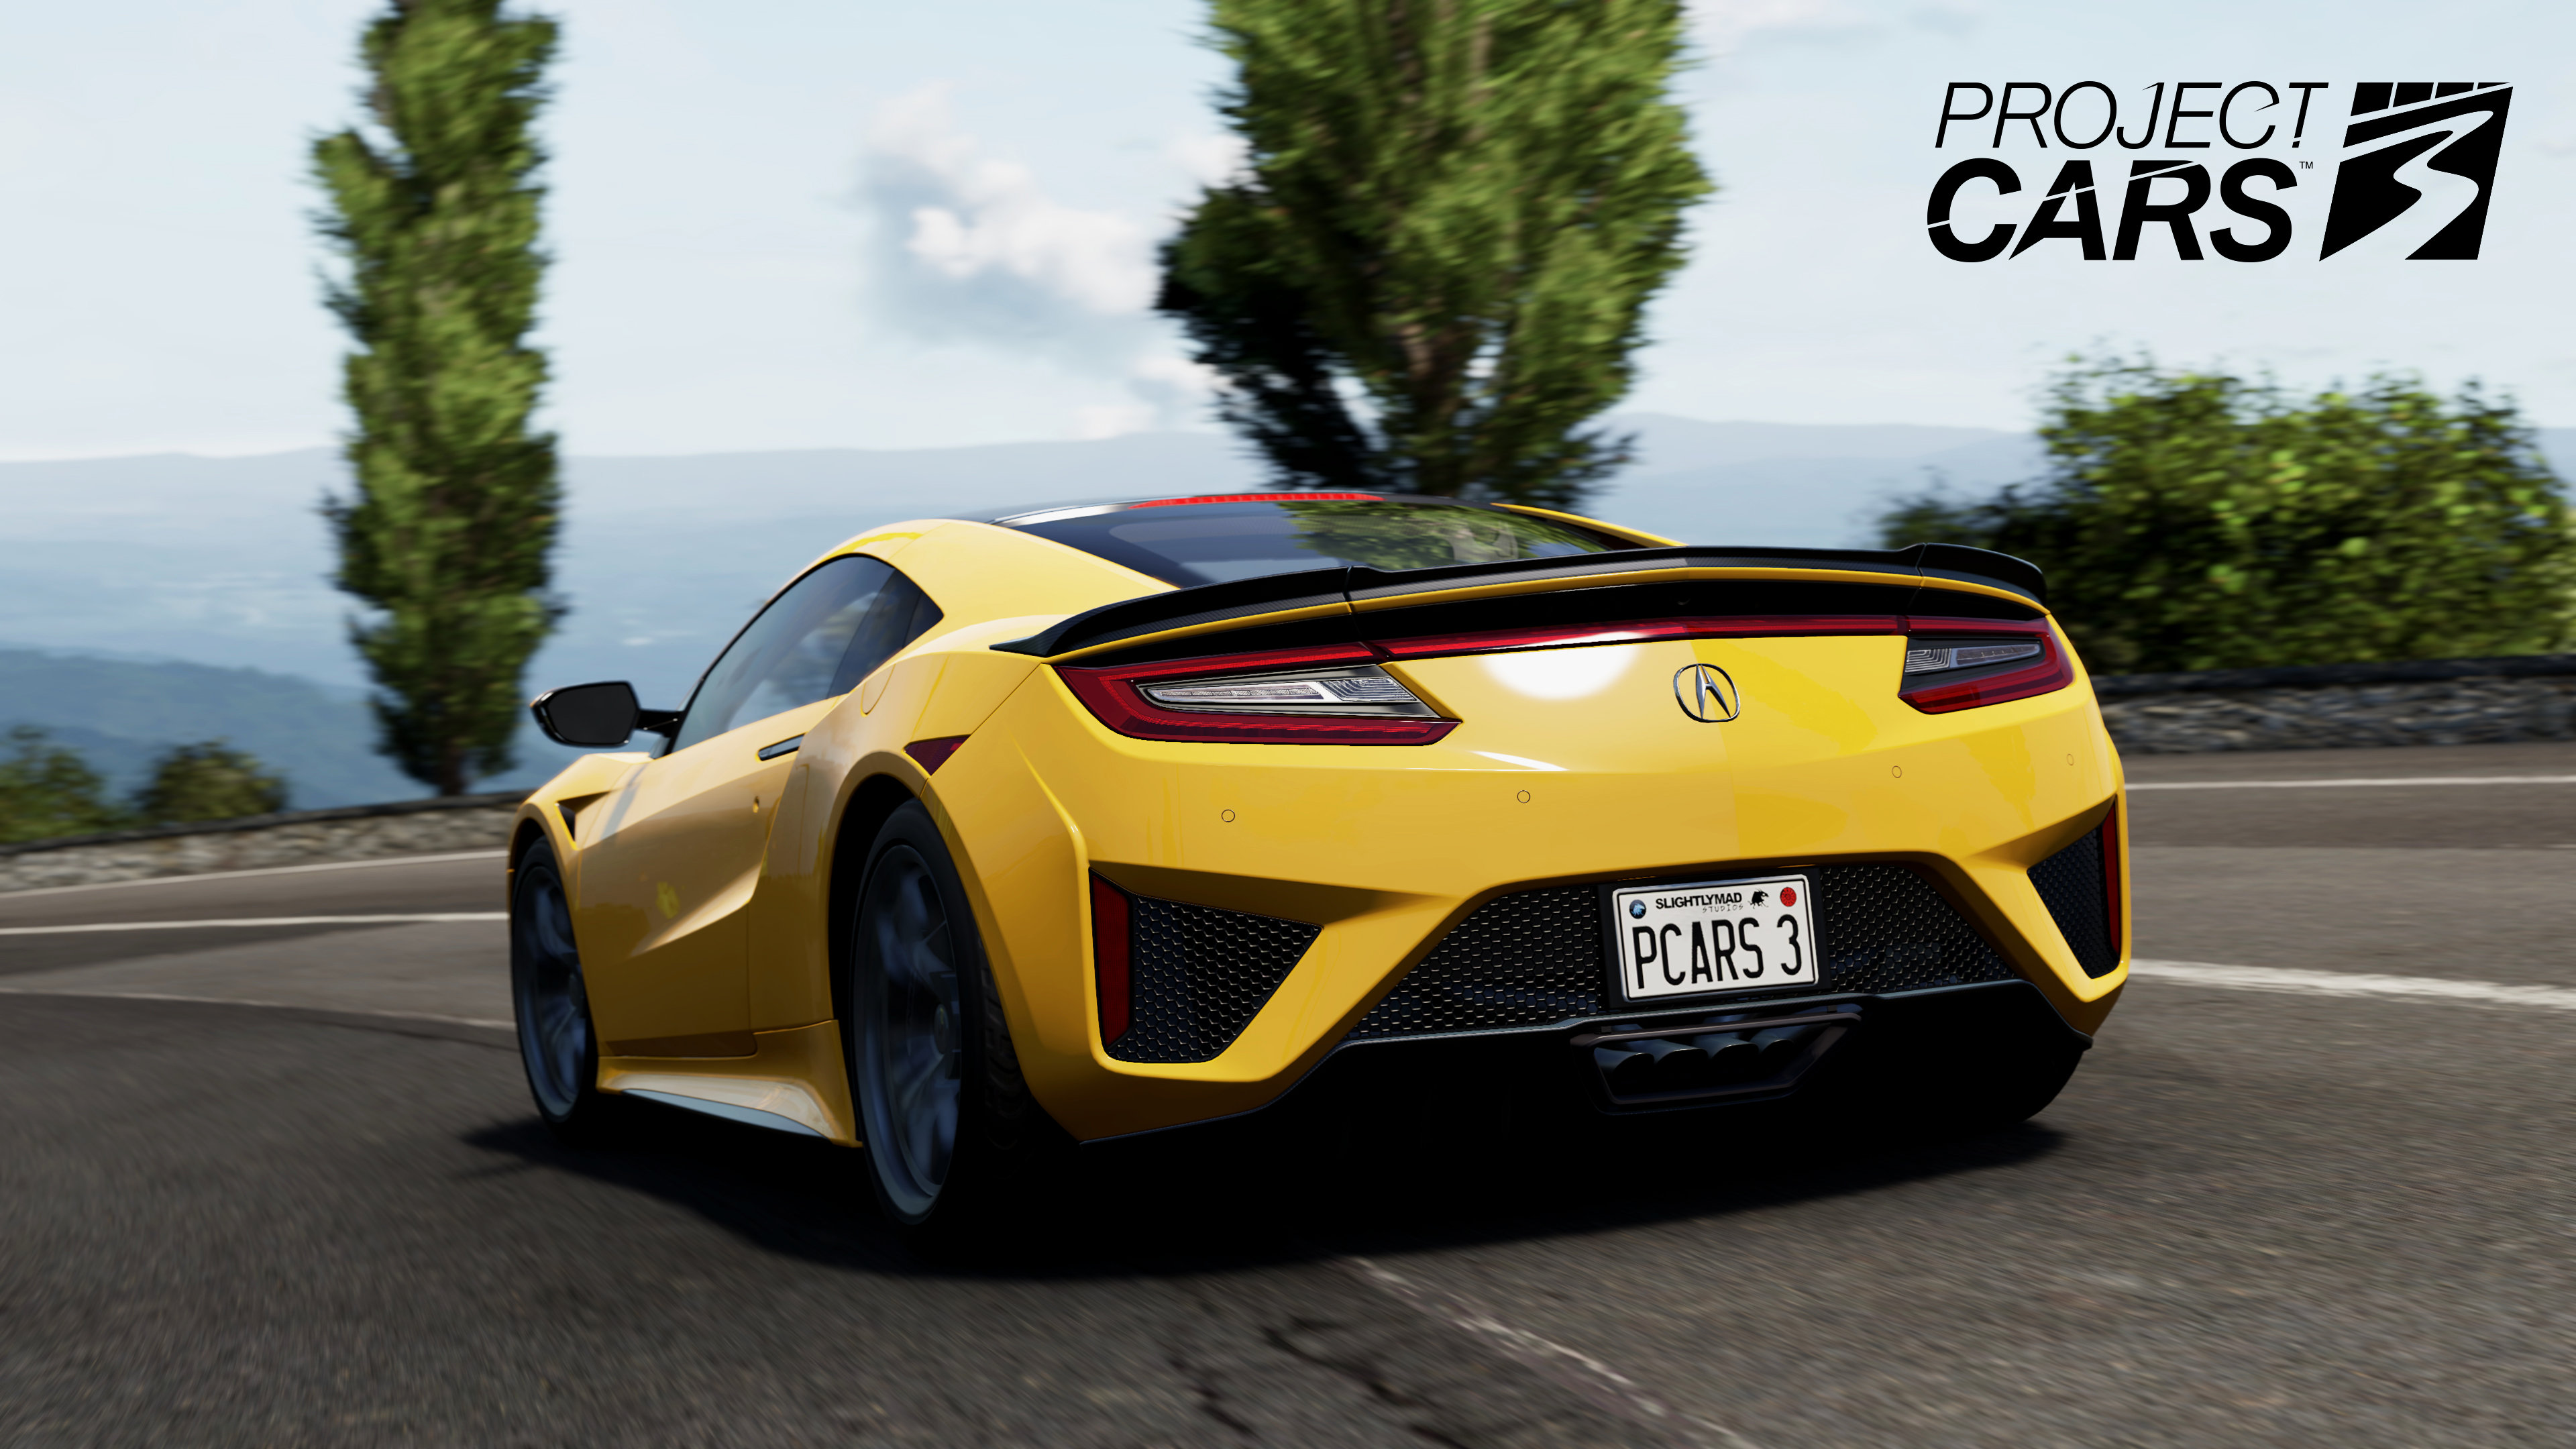 Project Cars 3 (PS4, Xbox) - Wie die Sonne.